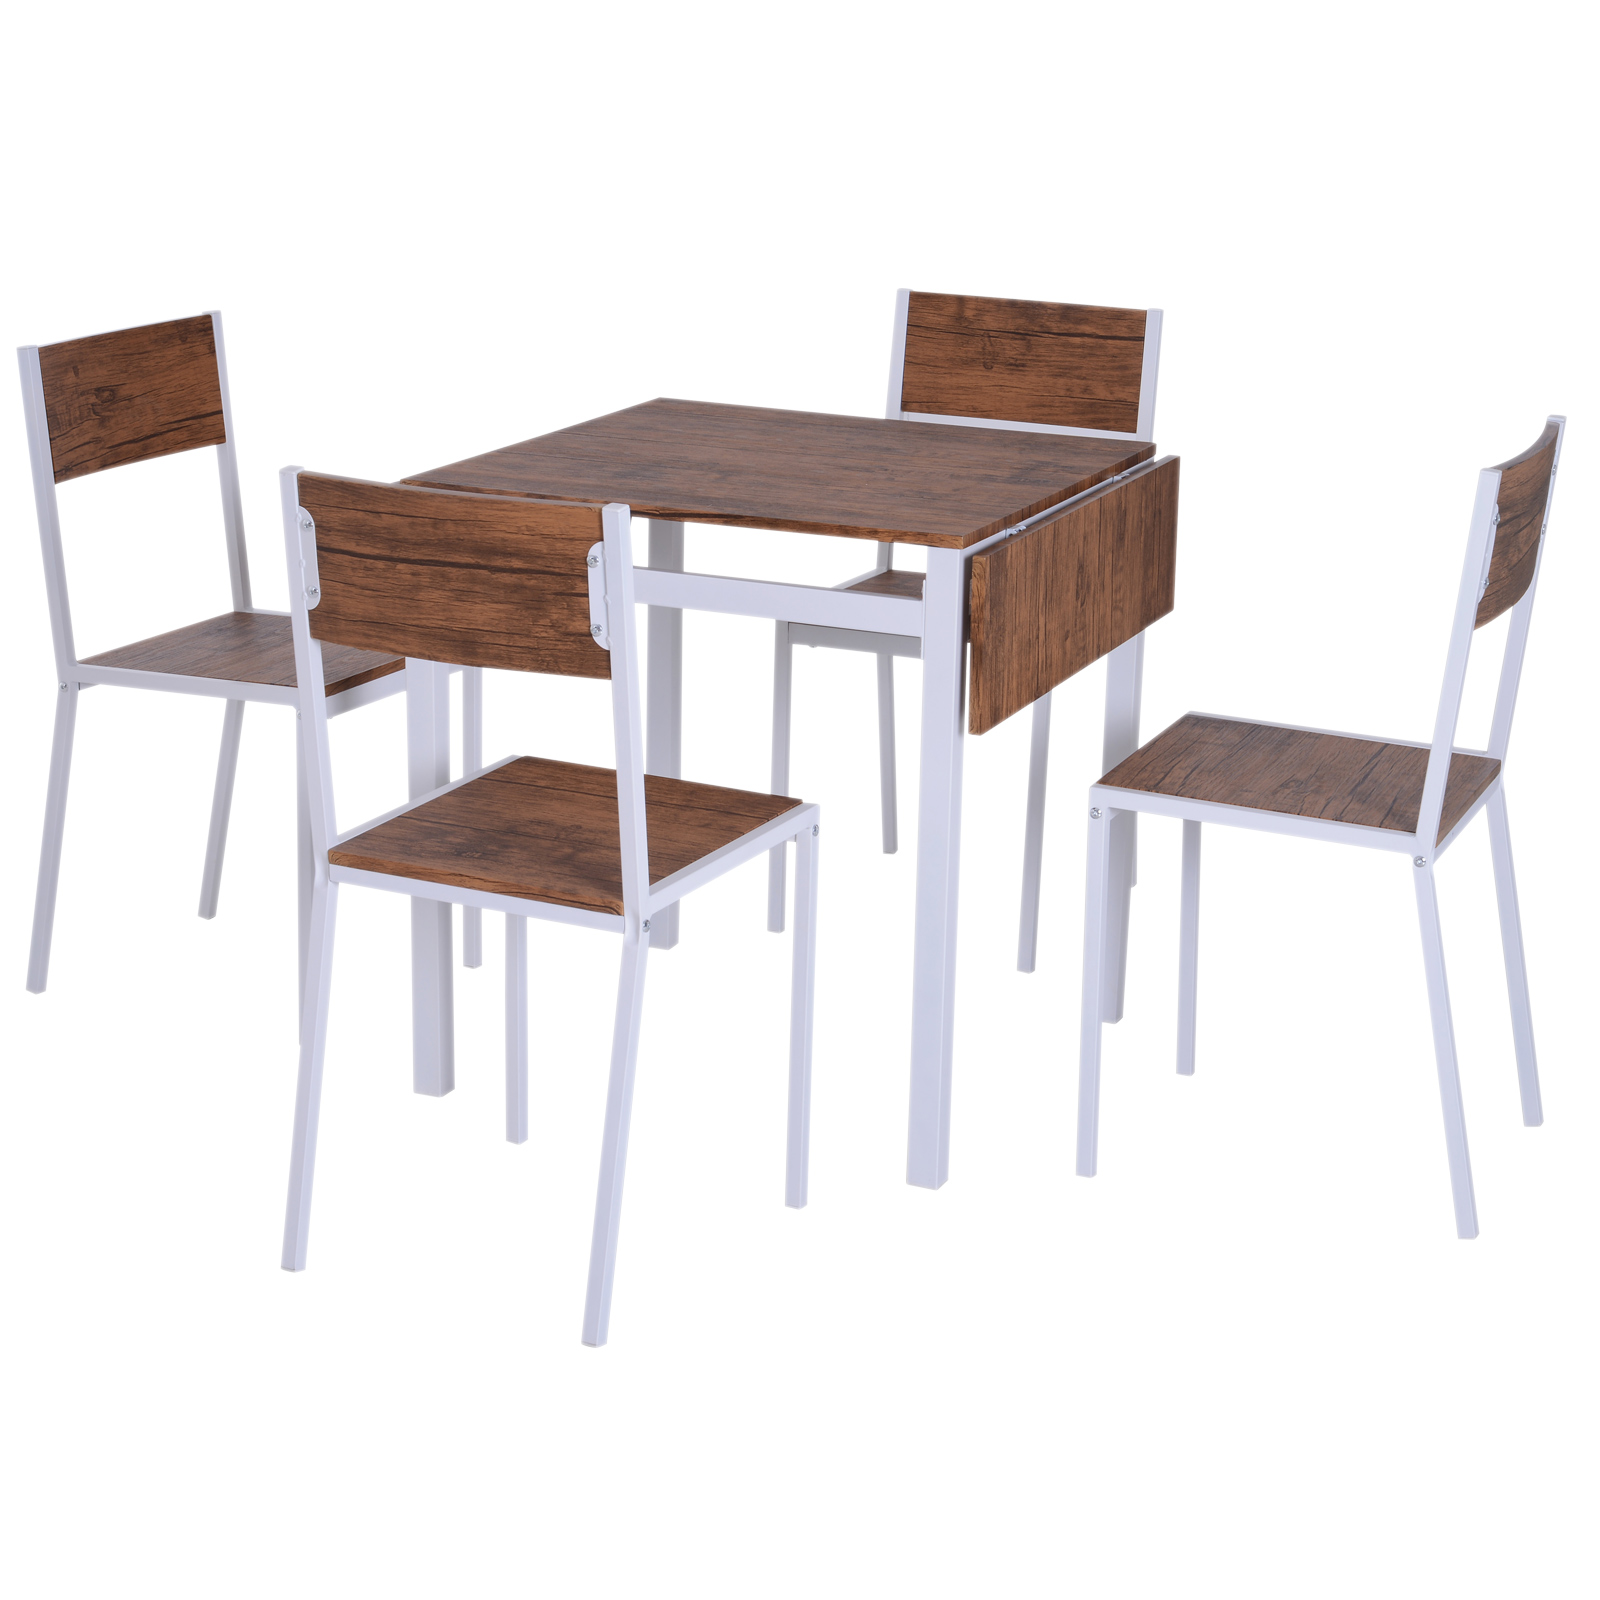 5-PC-Extending-Drop-Leaf-Counter-Height-Dining-Set-Table-amp-4-Chairs-Kitchen thumbnail 21